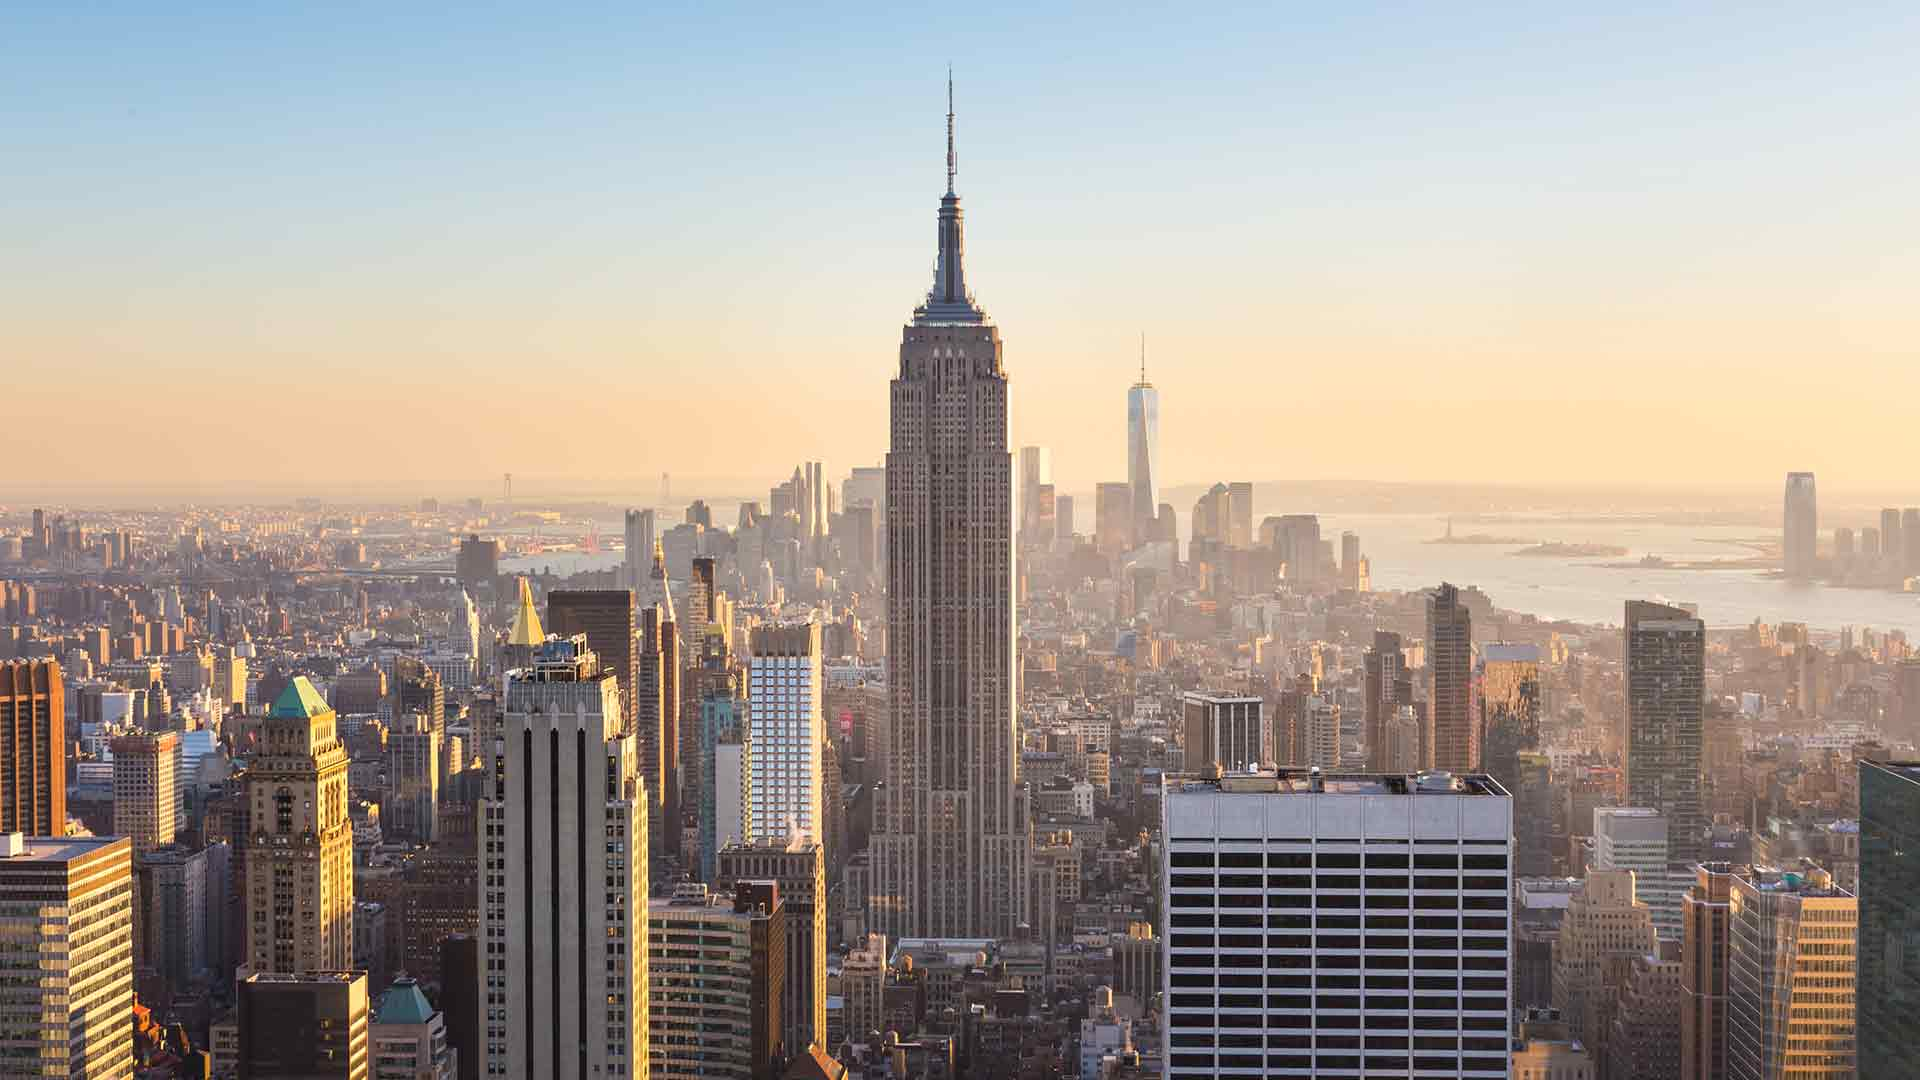 Man Stabbed to Death in Crime-Ridden Hotel Near Empire State Building